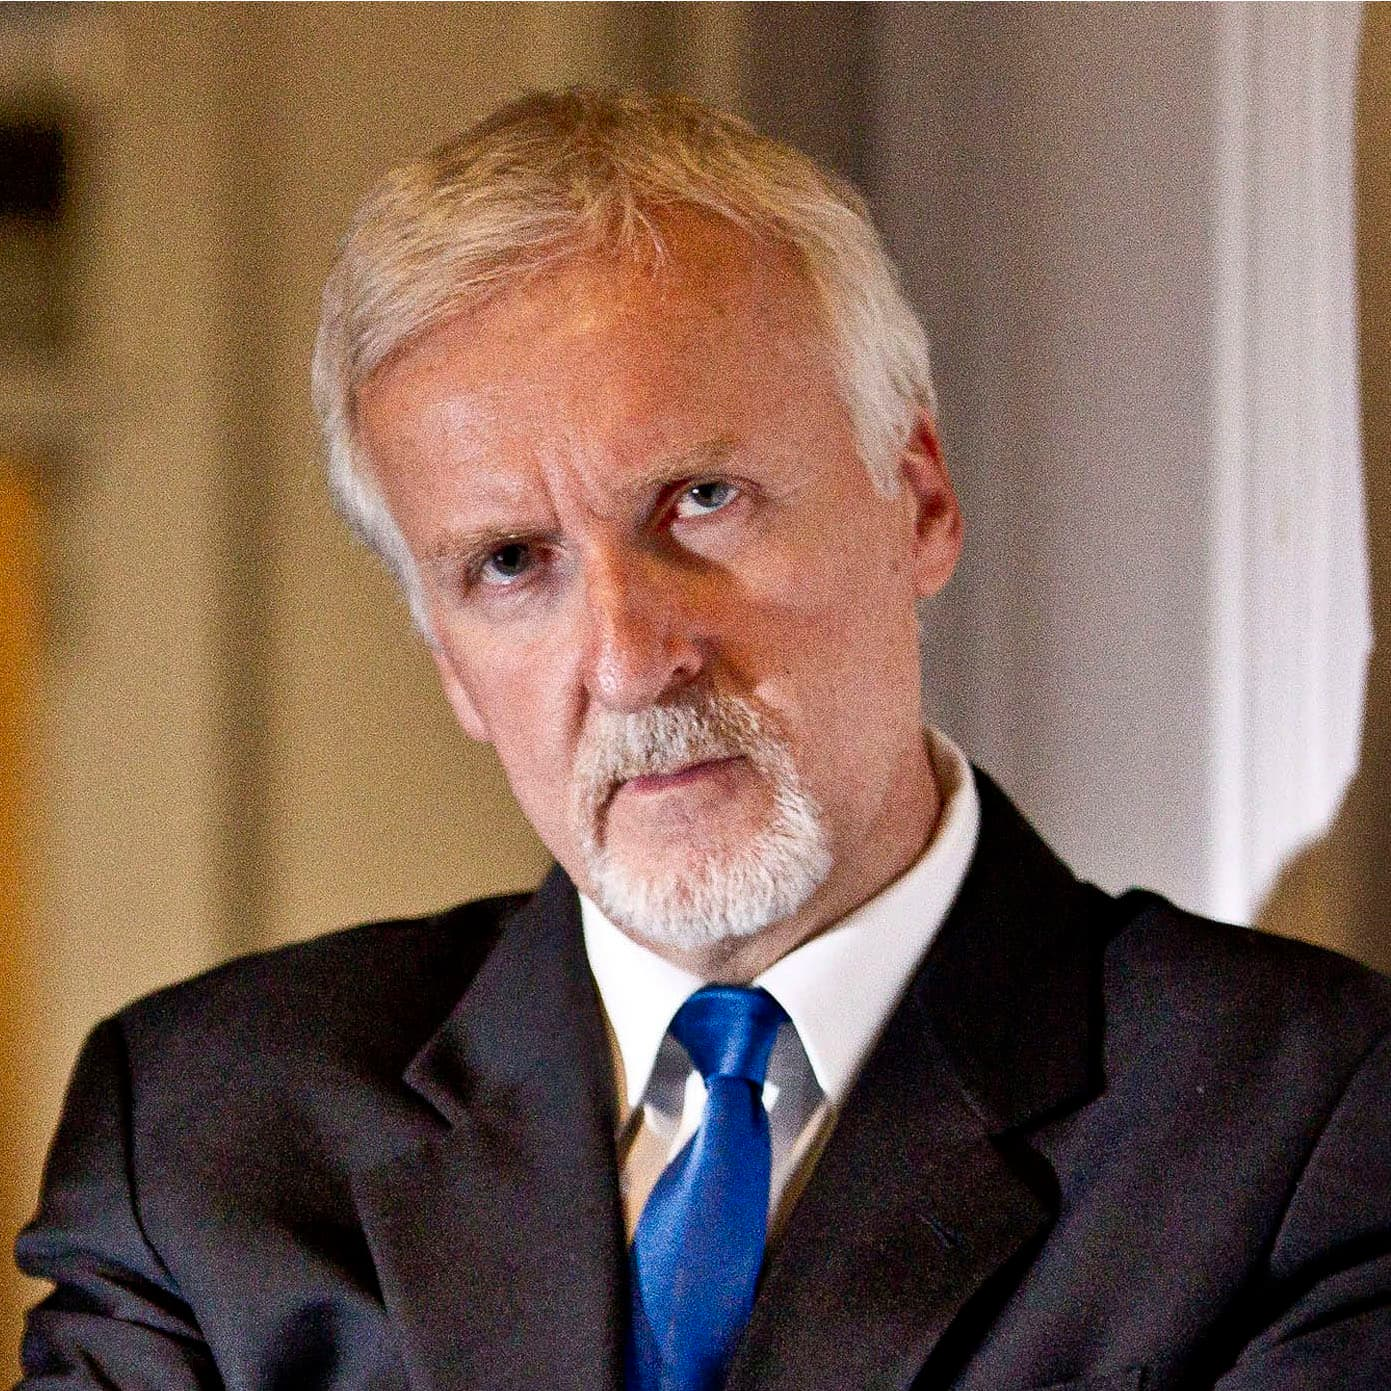 James Cameron: George Stroumboulopoulos Tonight